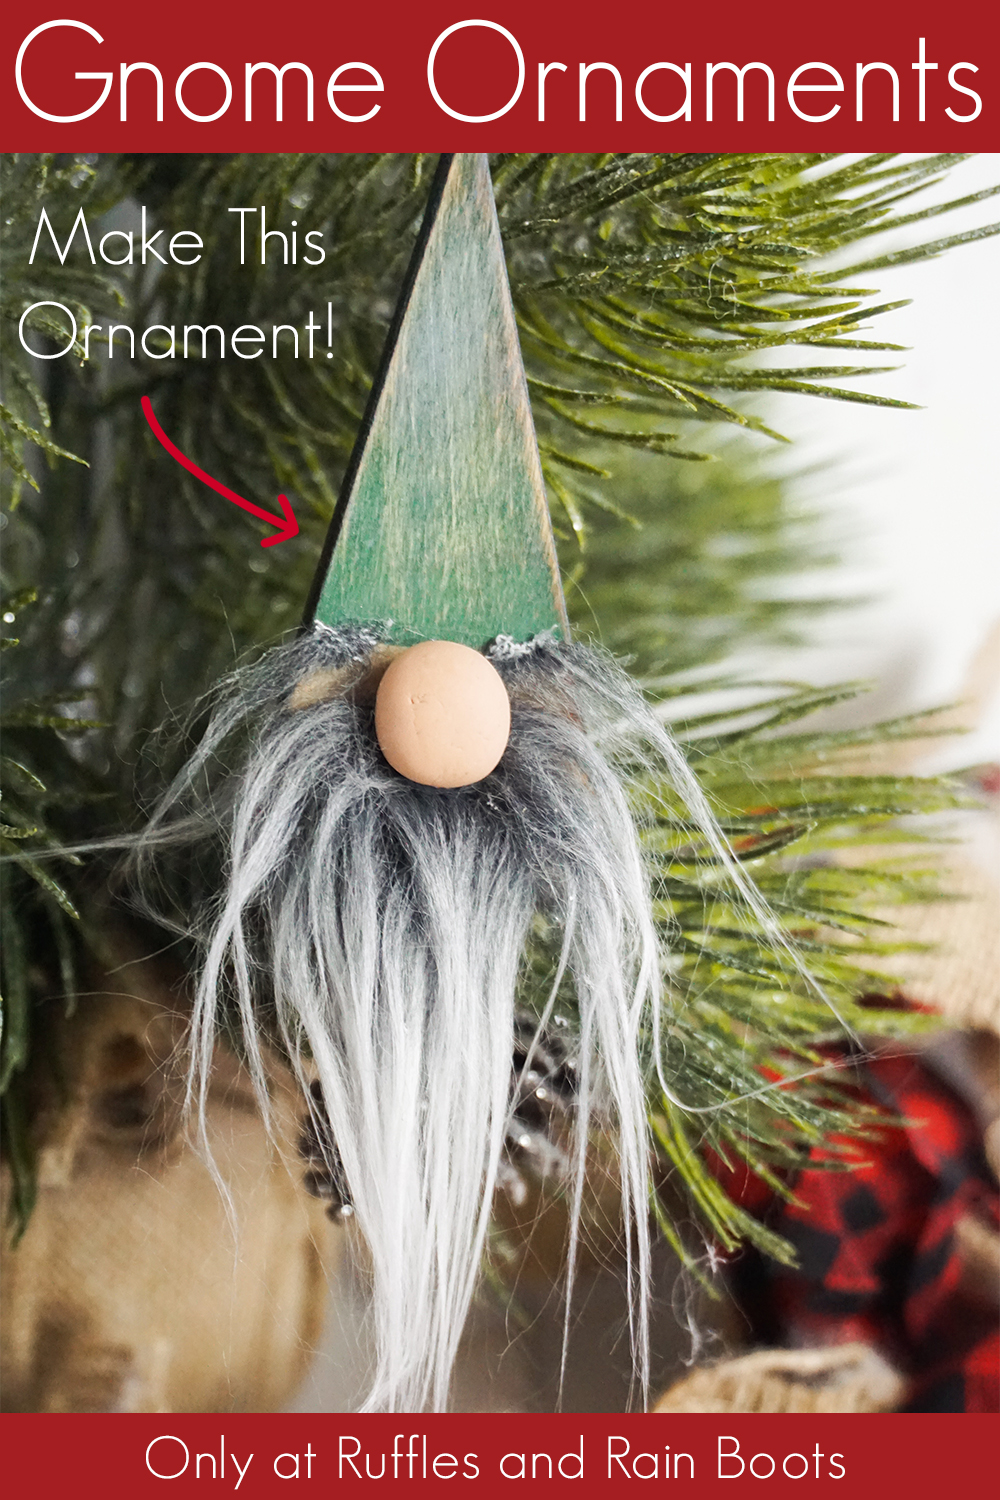 farmhouse gnome ornaments hanging on a tree on a white background with text which reads gnome ornaments make this ornament